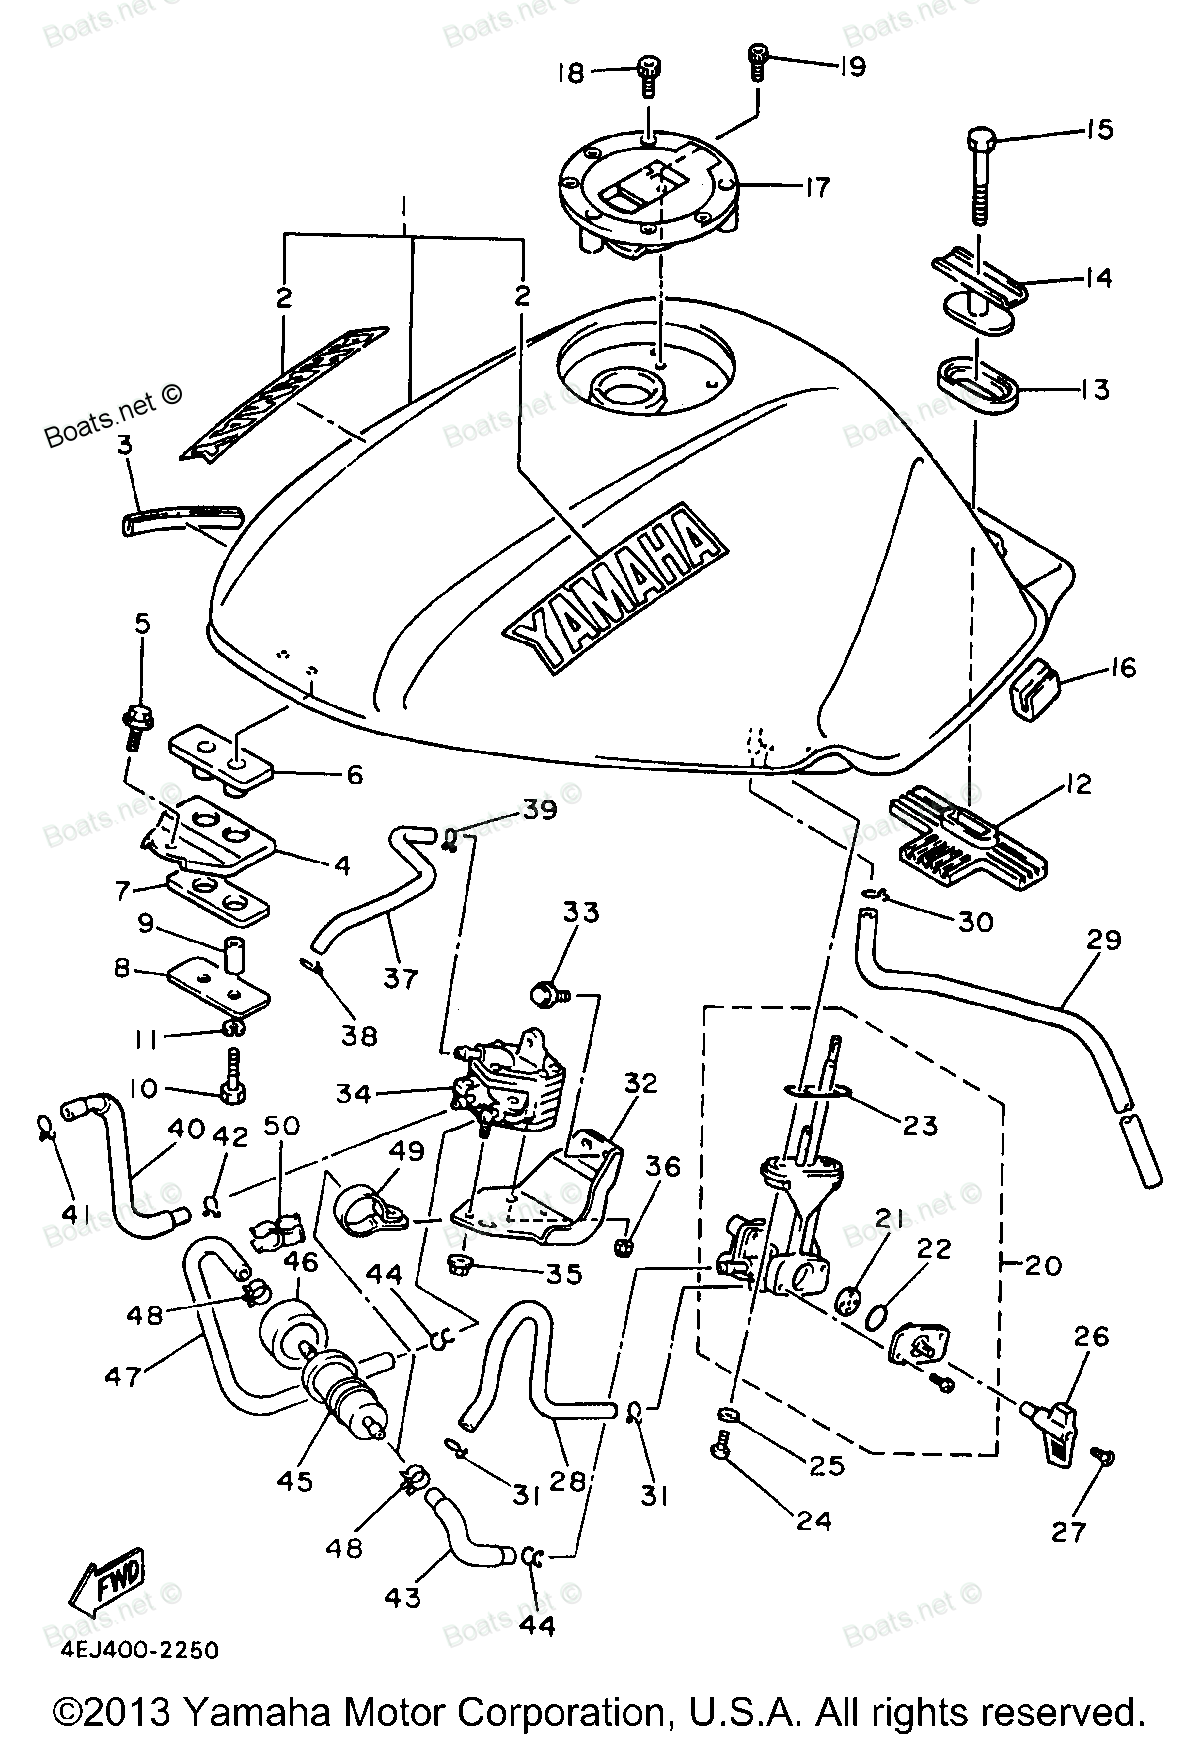 seca 2 yamaha fuel system diagram diagram of 1997 seca ii small engine fuel line sizes motorcycle fuel line diagram [ 1200 x 1742 Pixel ]